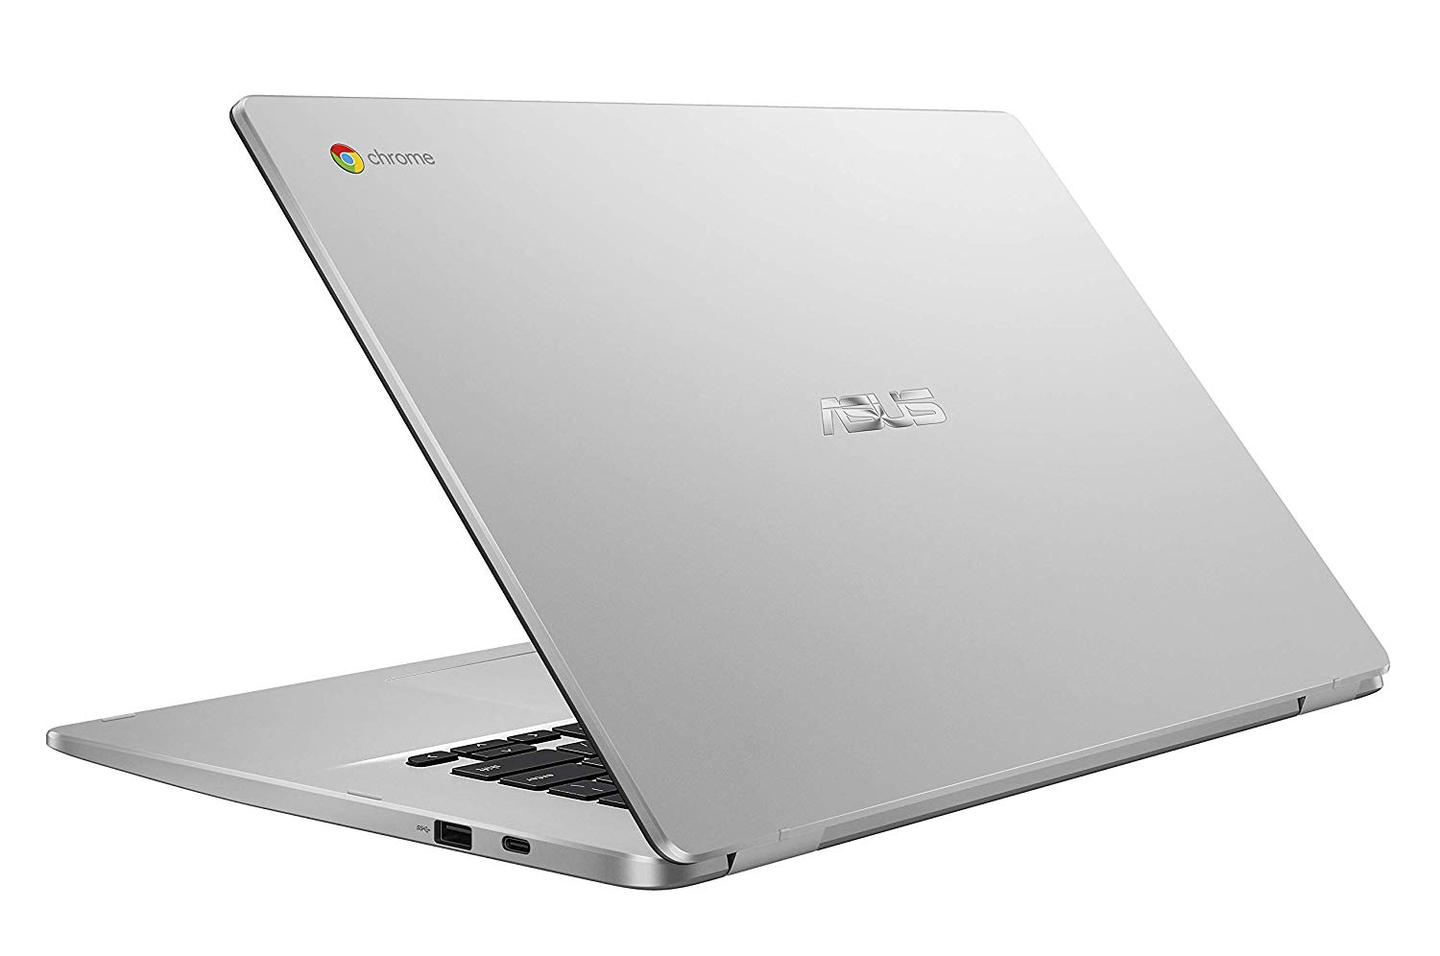 The  Asus Chromebook C523 has a 38 Wh Lithiumpolymer battery that's reported good for up to 10 hours of use between charges